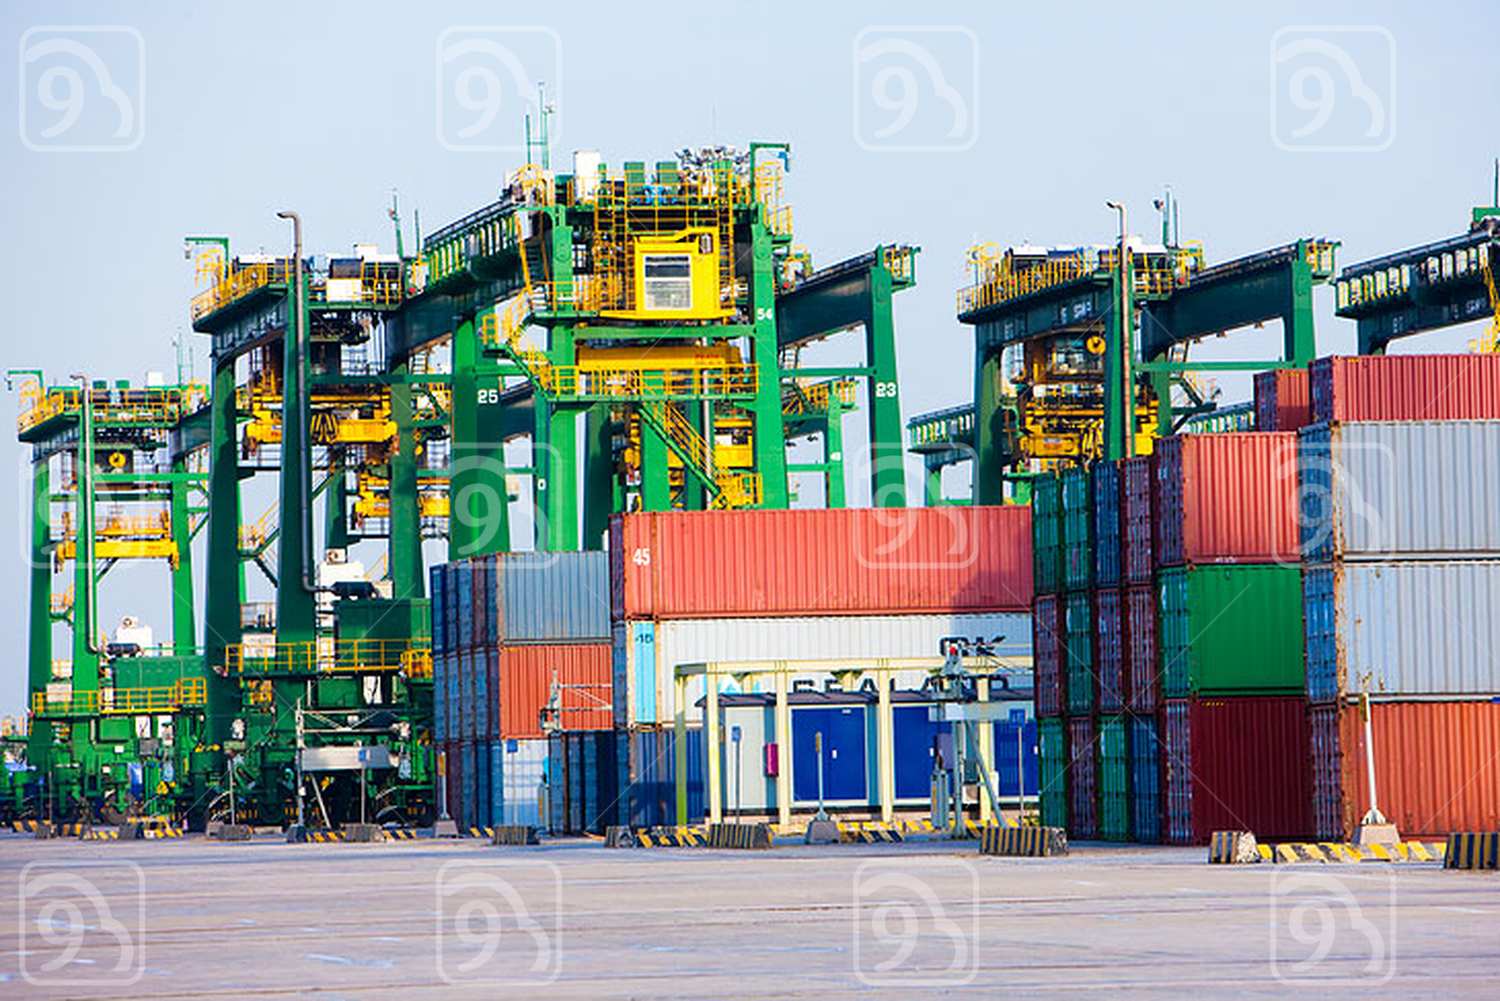 Cranes and cargo containers in shipping port